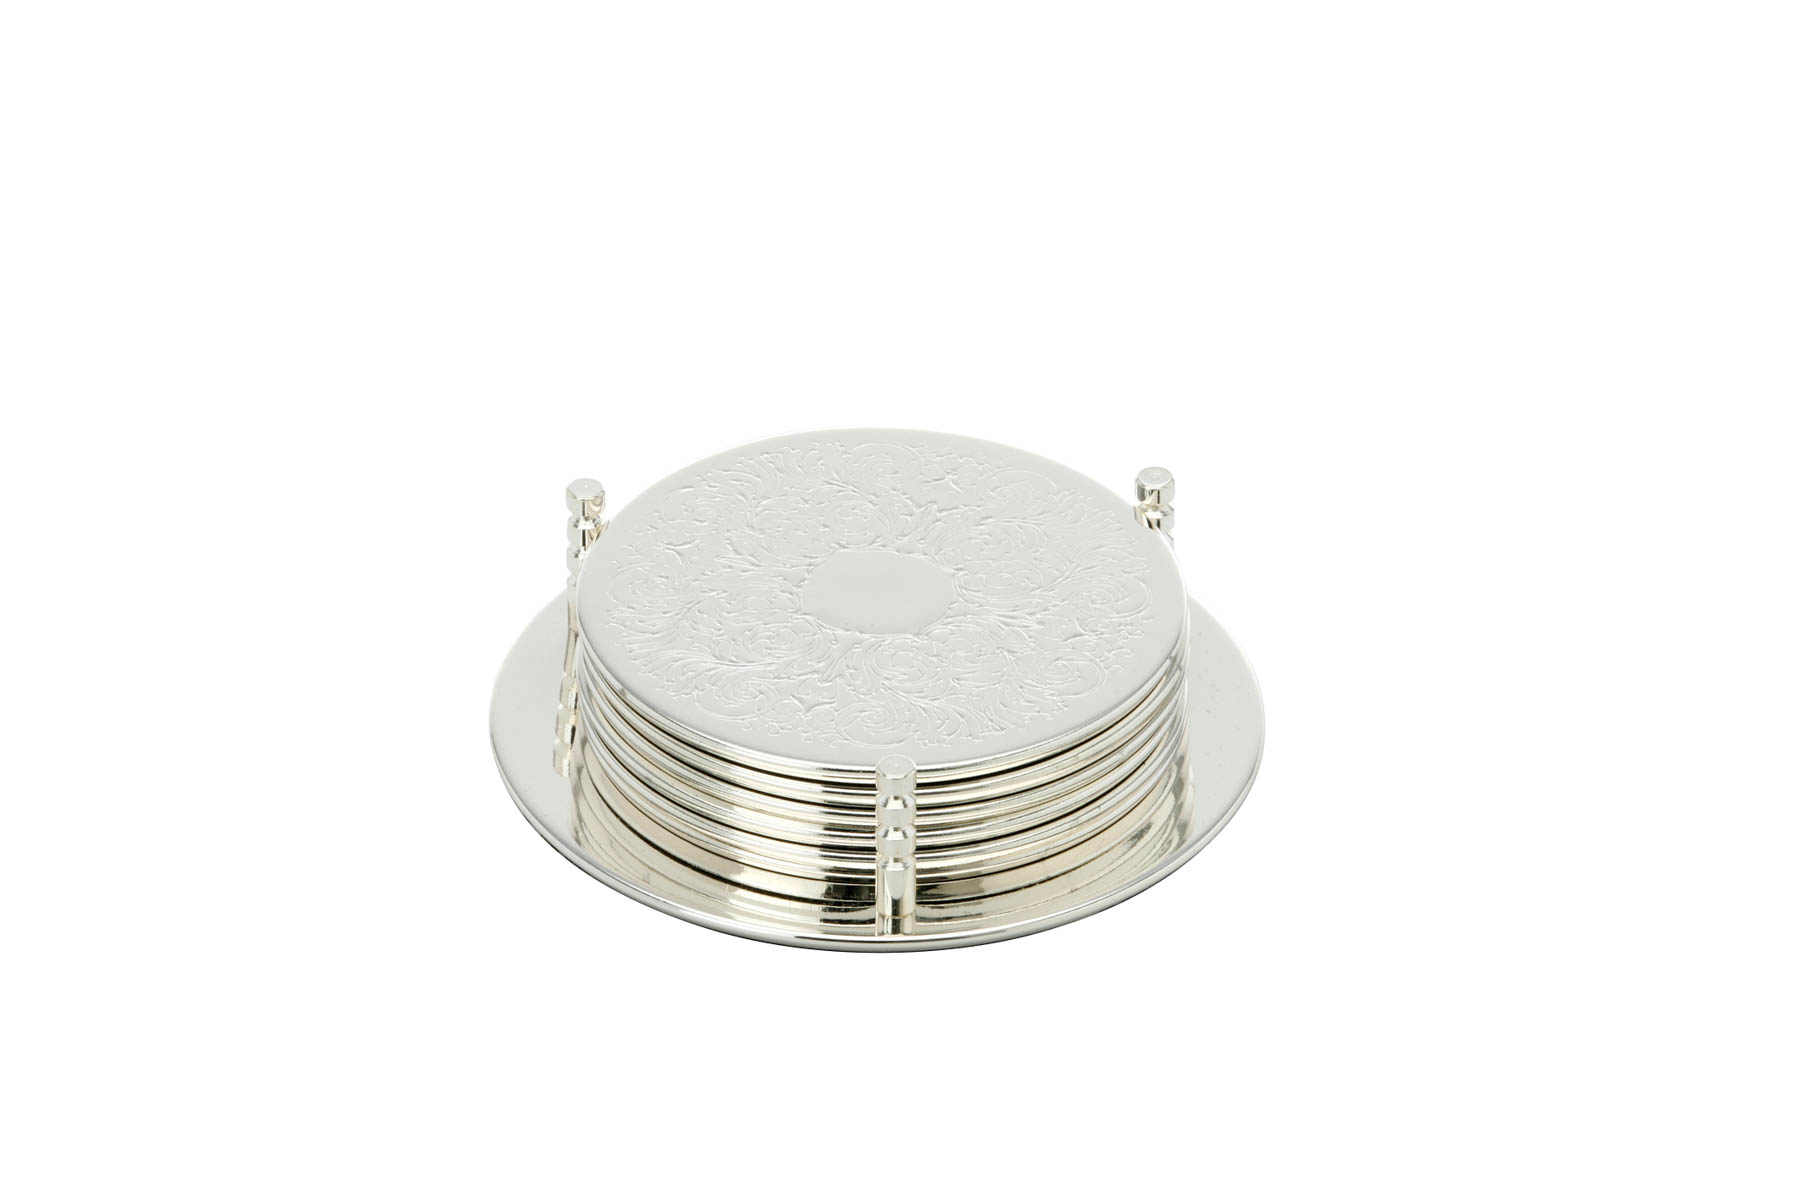 Coaster with Stand Set of 6, round, embossed